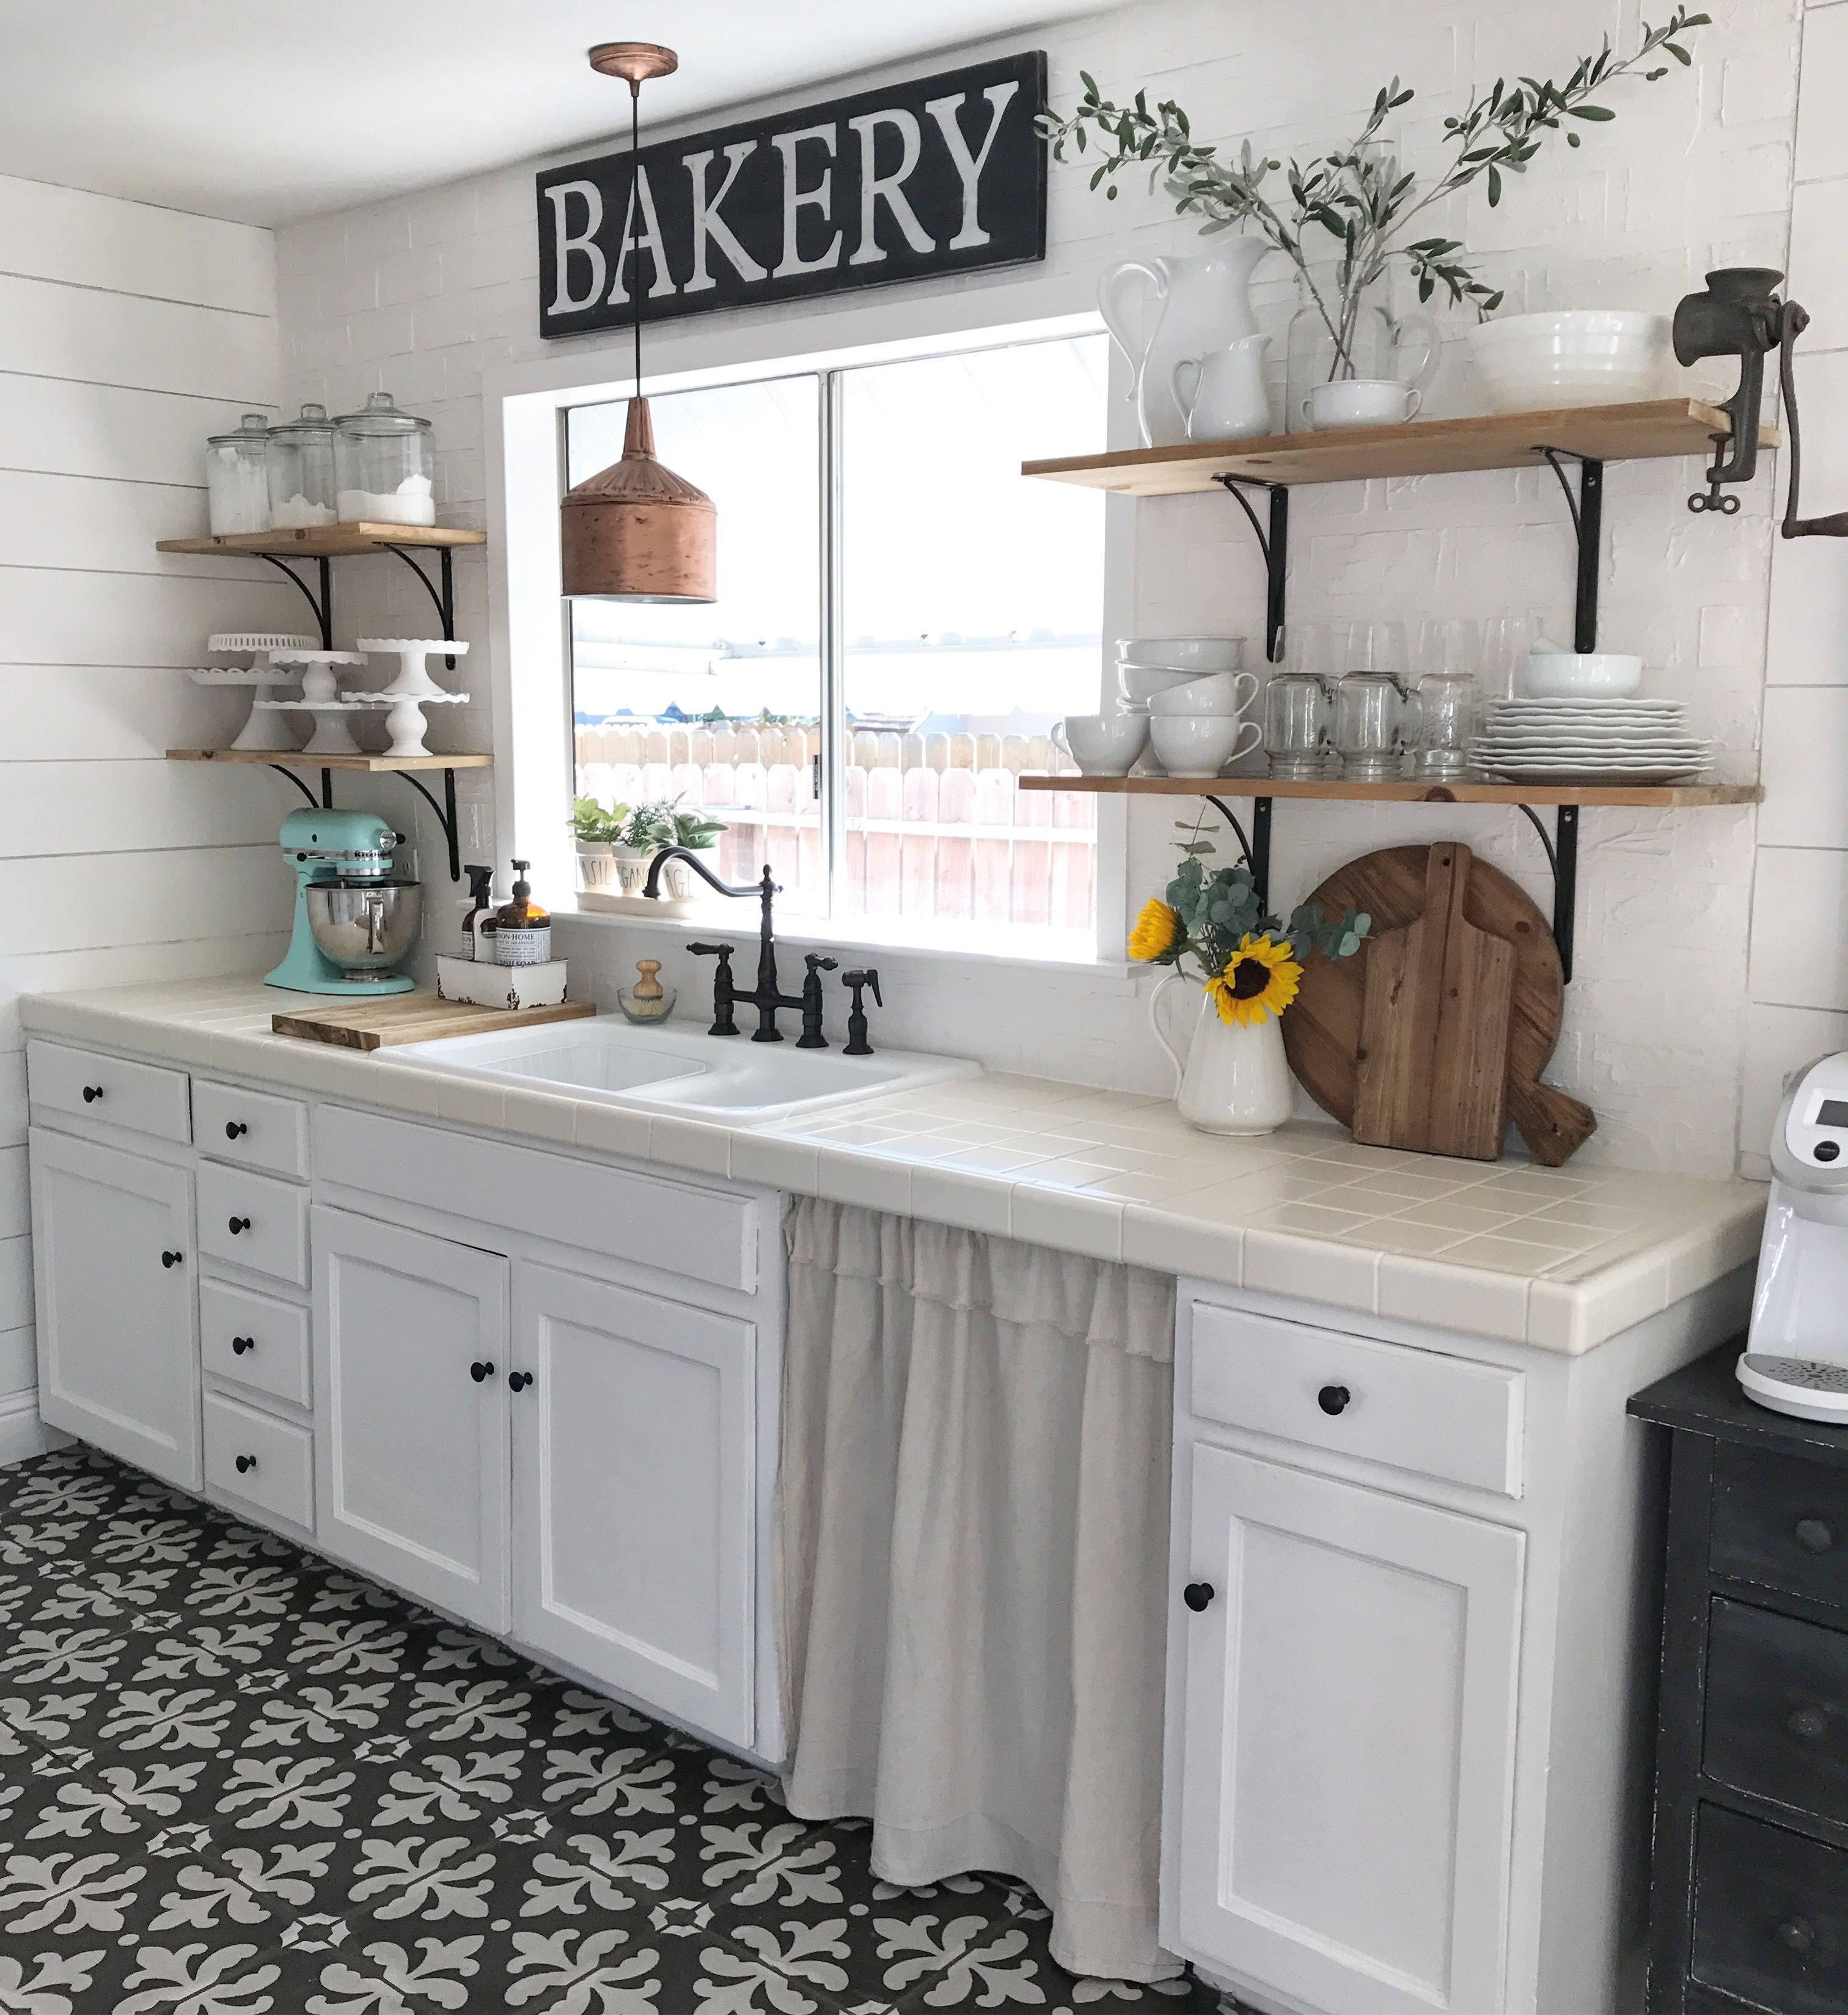 Galley kitchen makeover on a budget.   Cocina   Pinterest   Galley ...